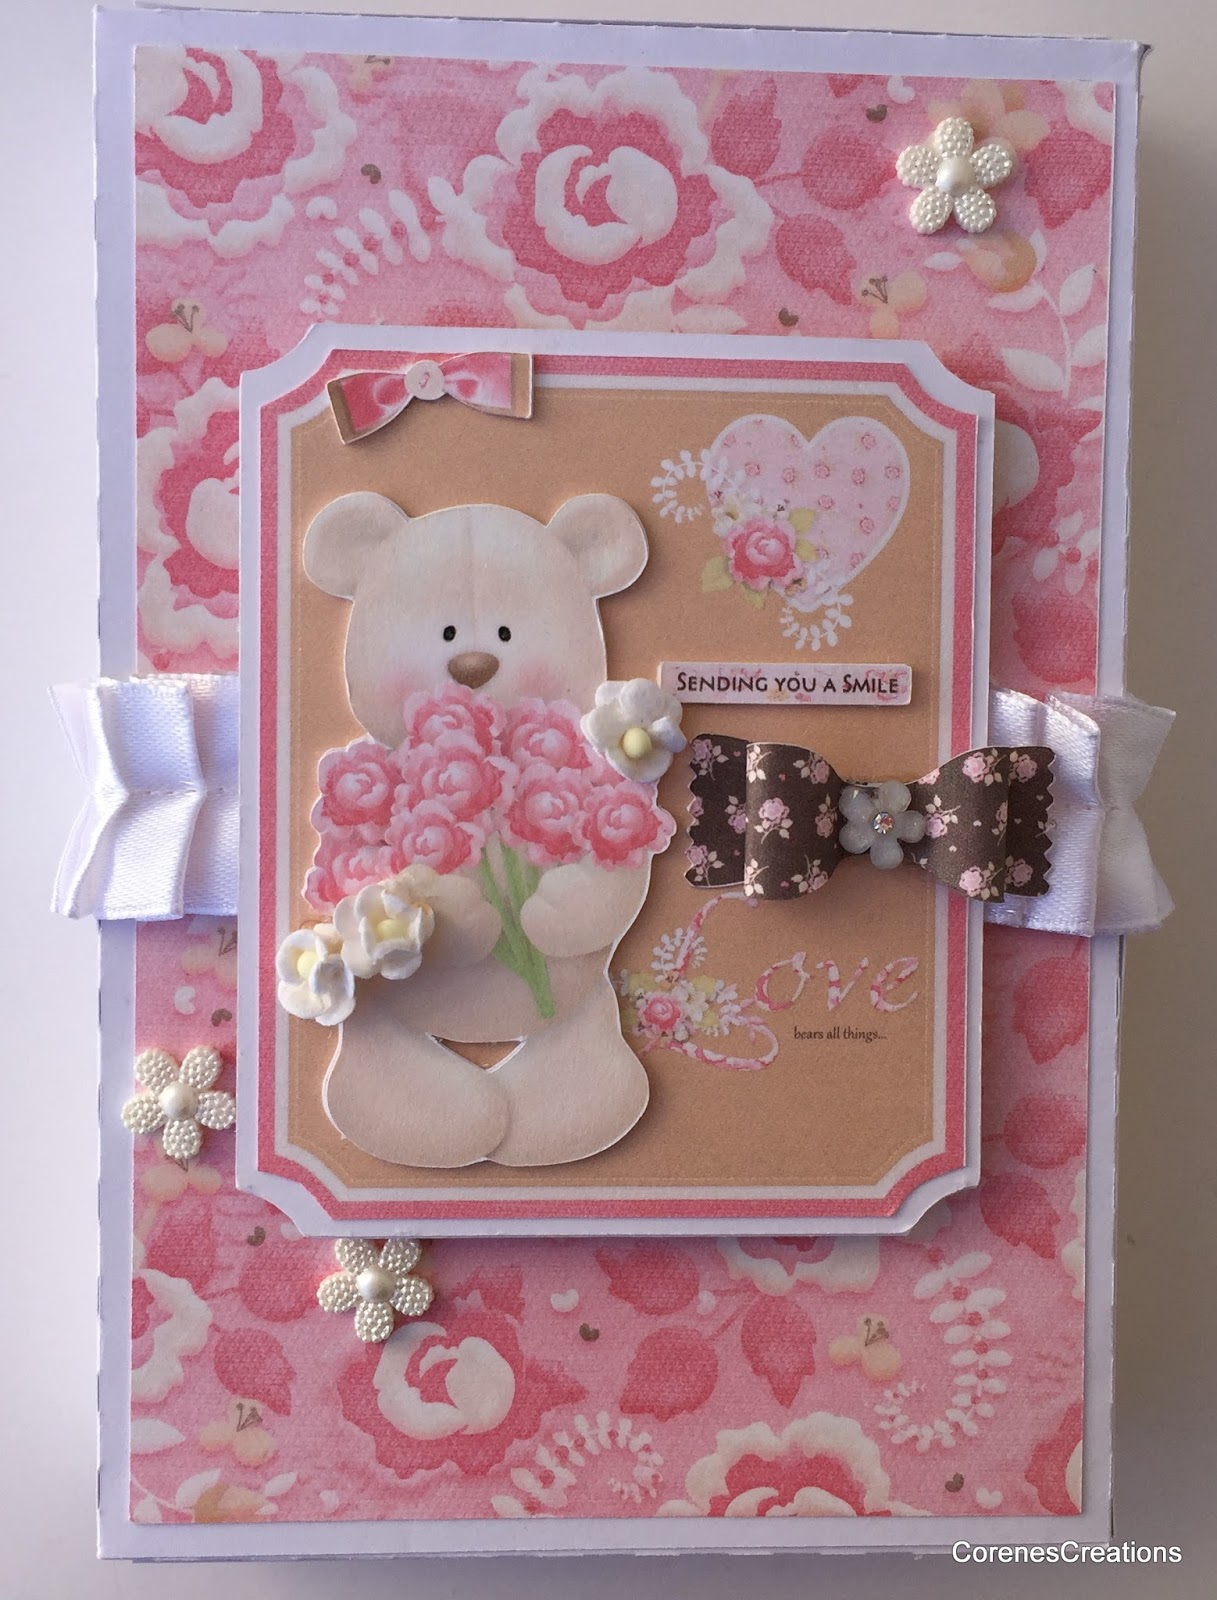 Corenescreations Sweet Greeting Cards Matching Gift Box